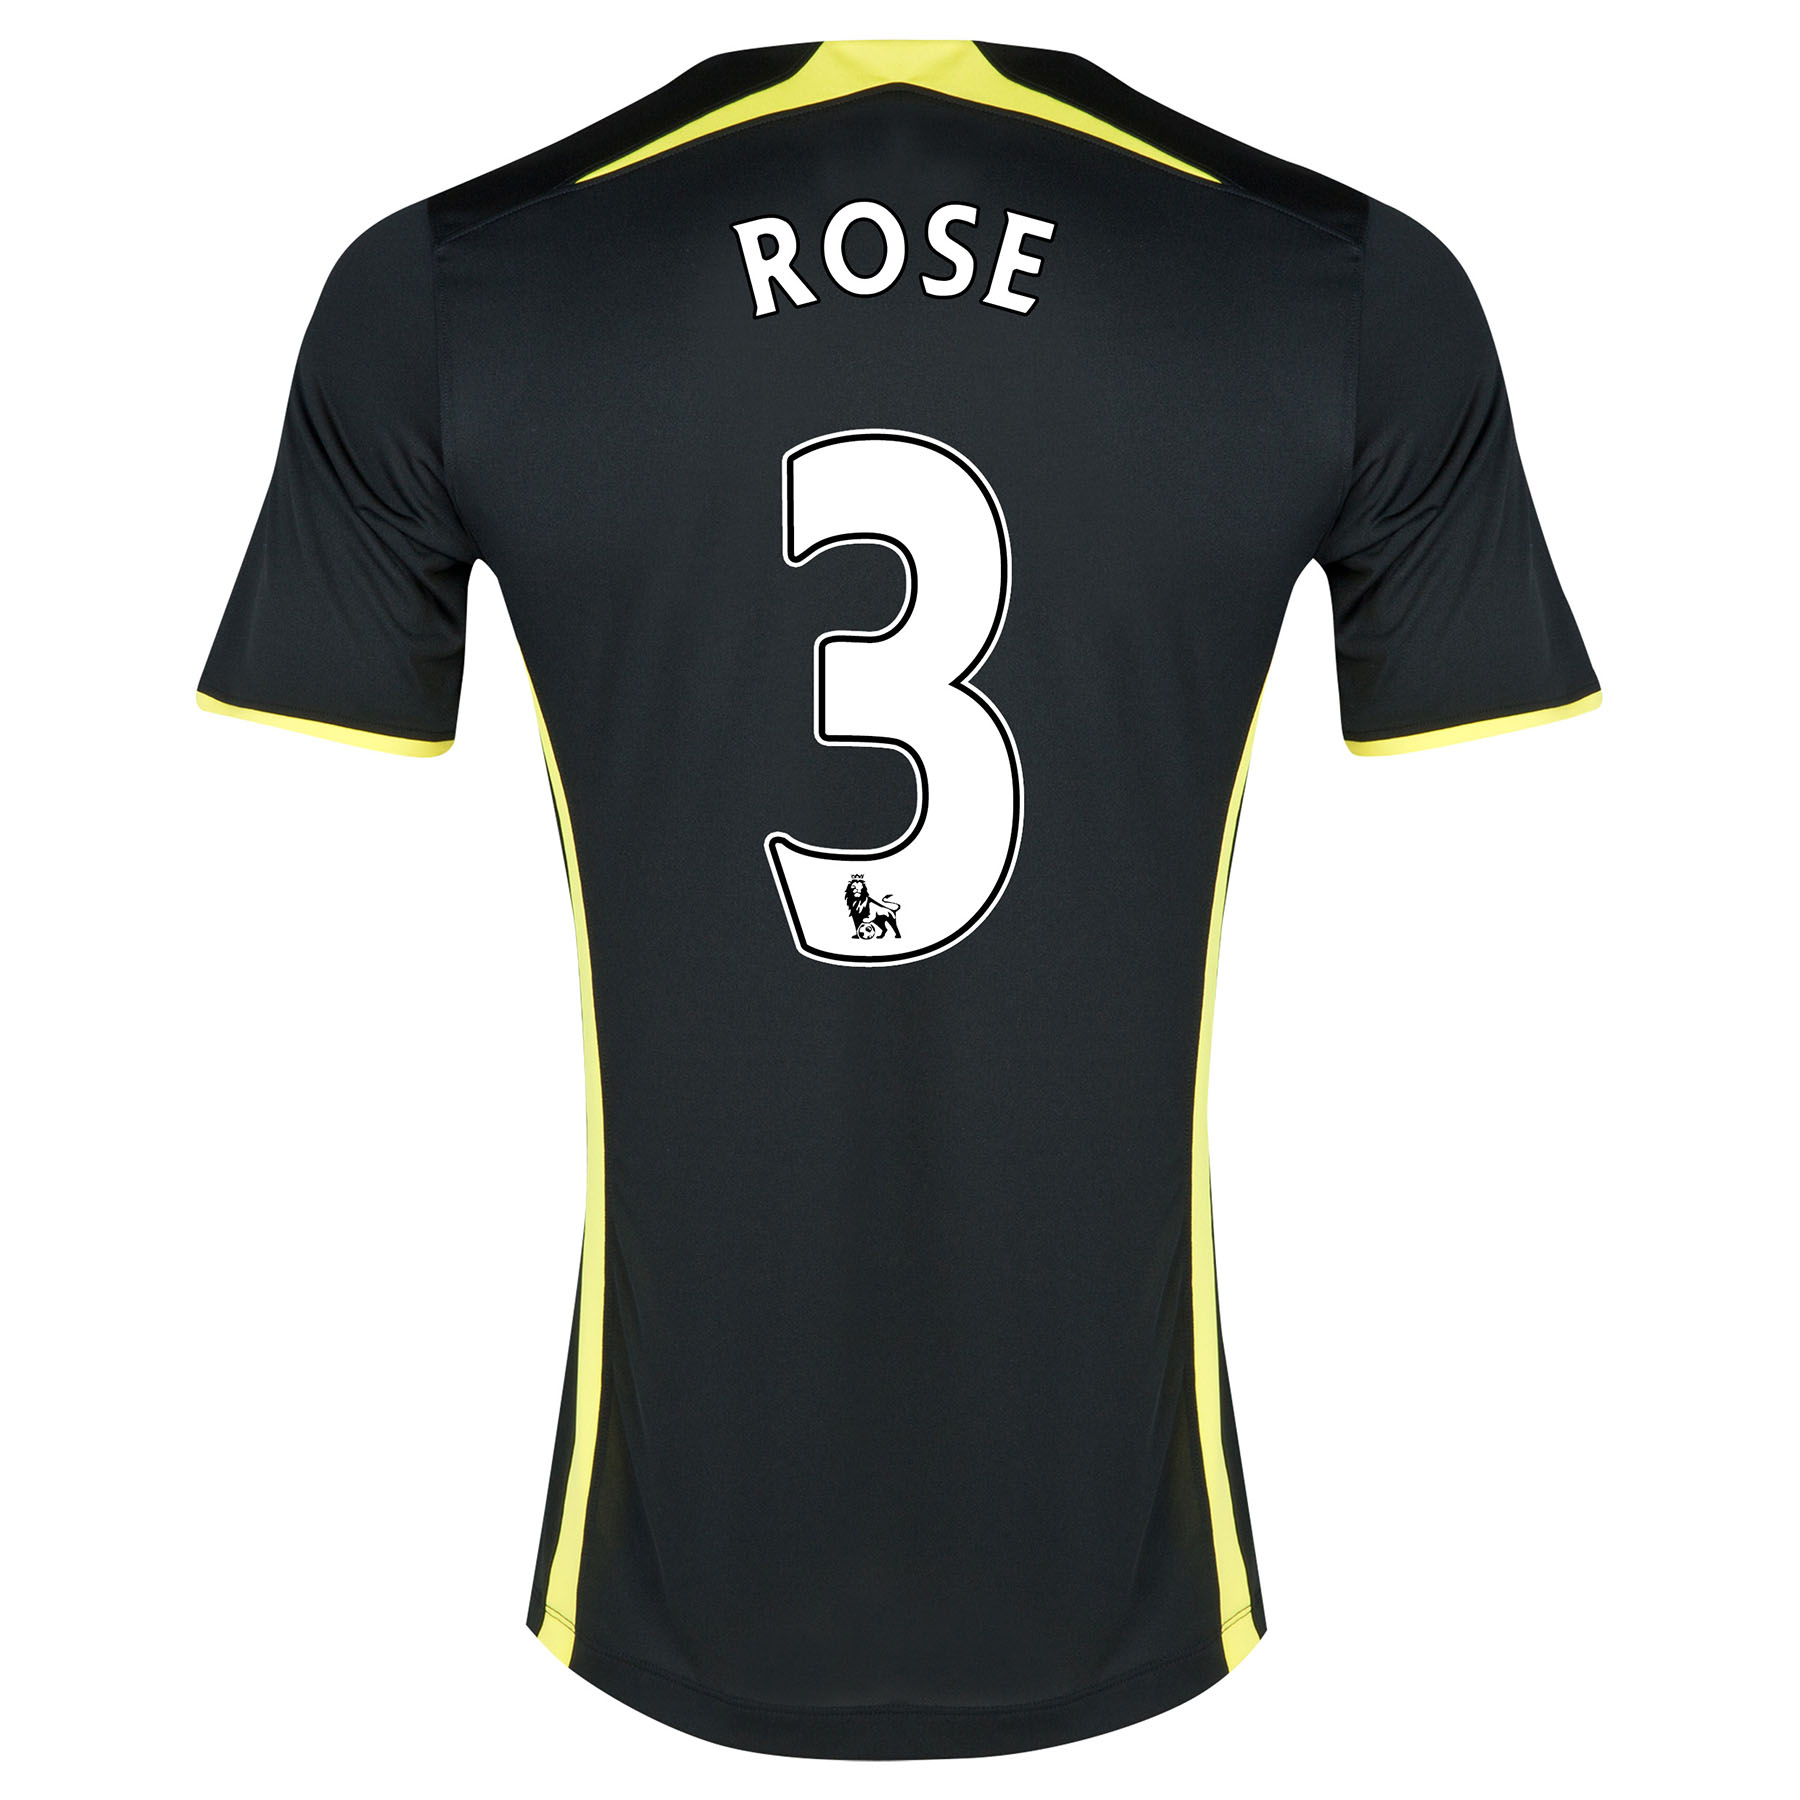 Tottenham Hotspur Away Shirt 2014/15 - Womens with Rose 3 printing